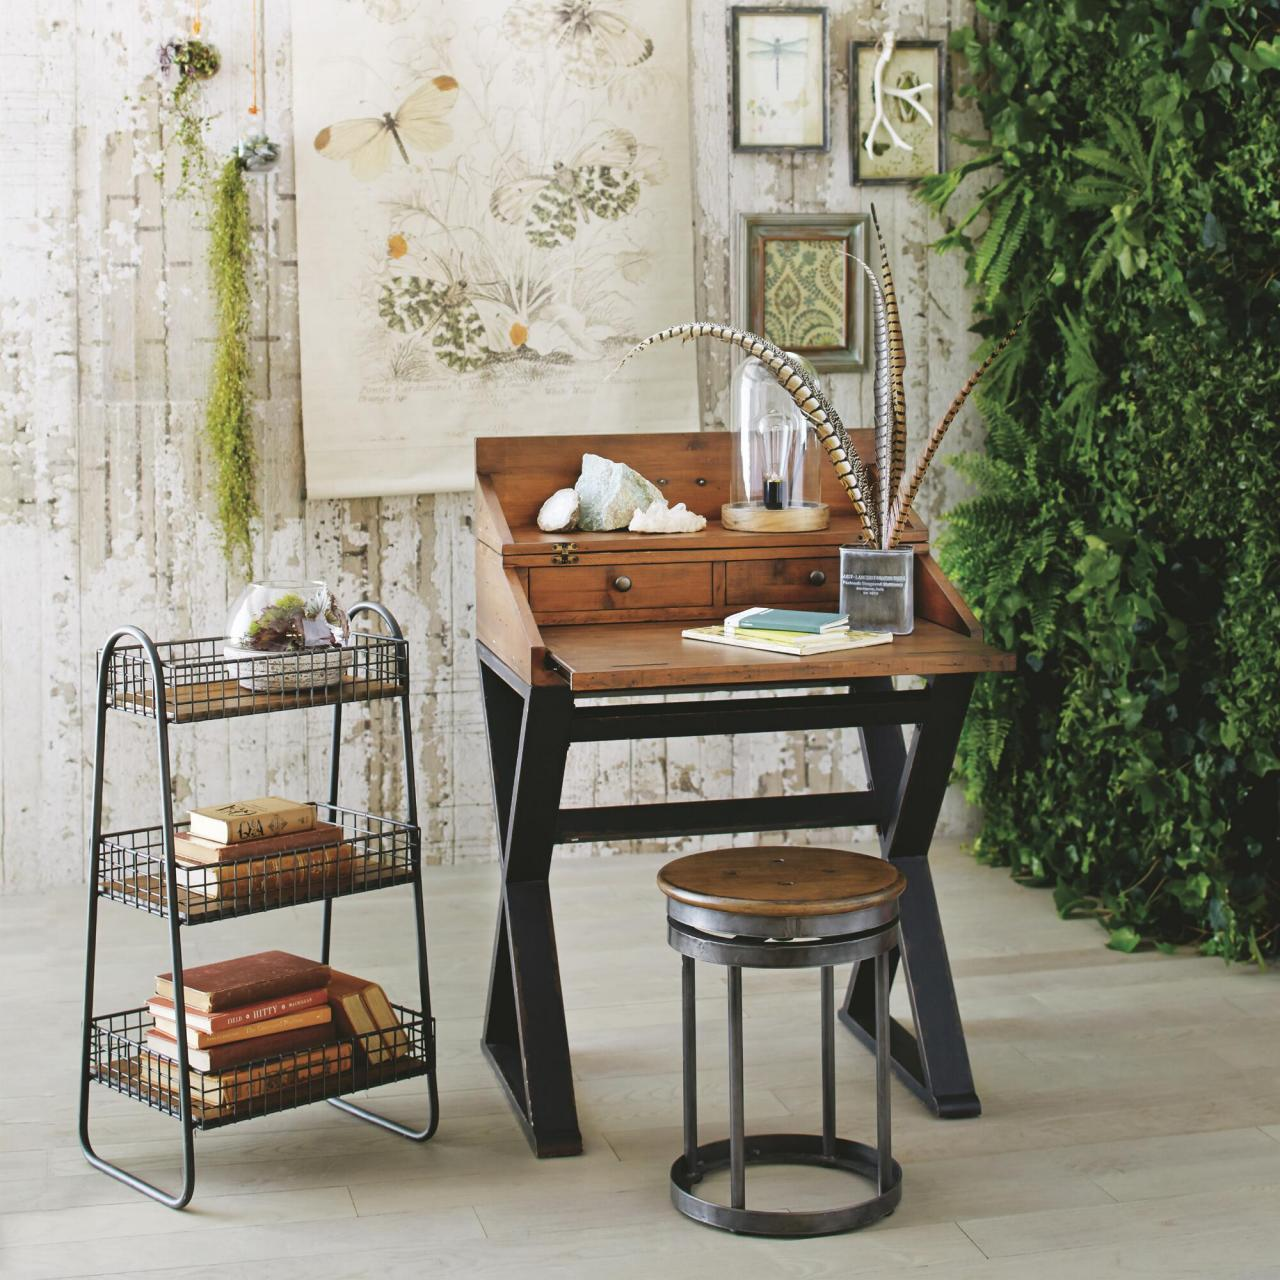 12 tiny desks for tiny home offices hgtv 39 s decorating design blog hgtv - Secretary desk for small spaces property ...